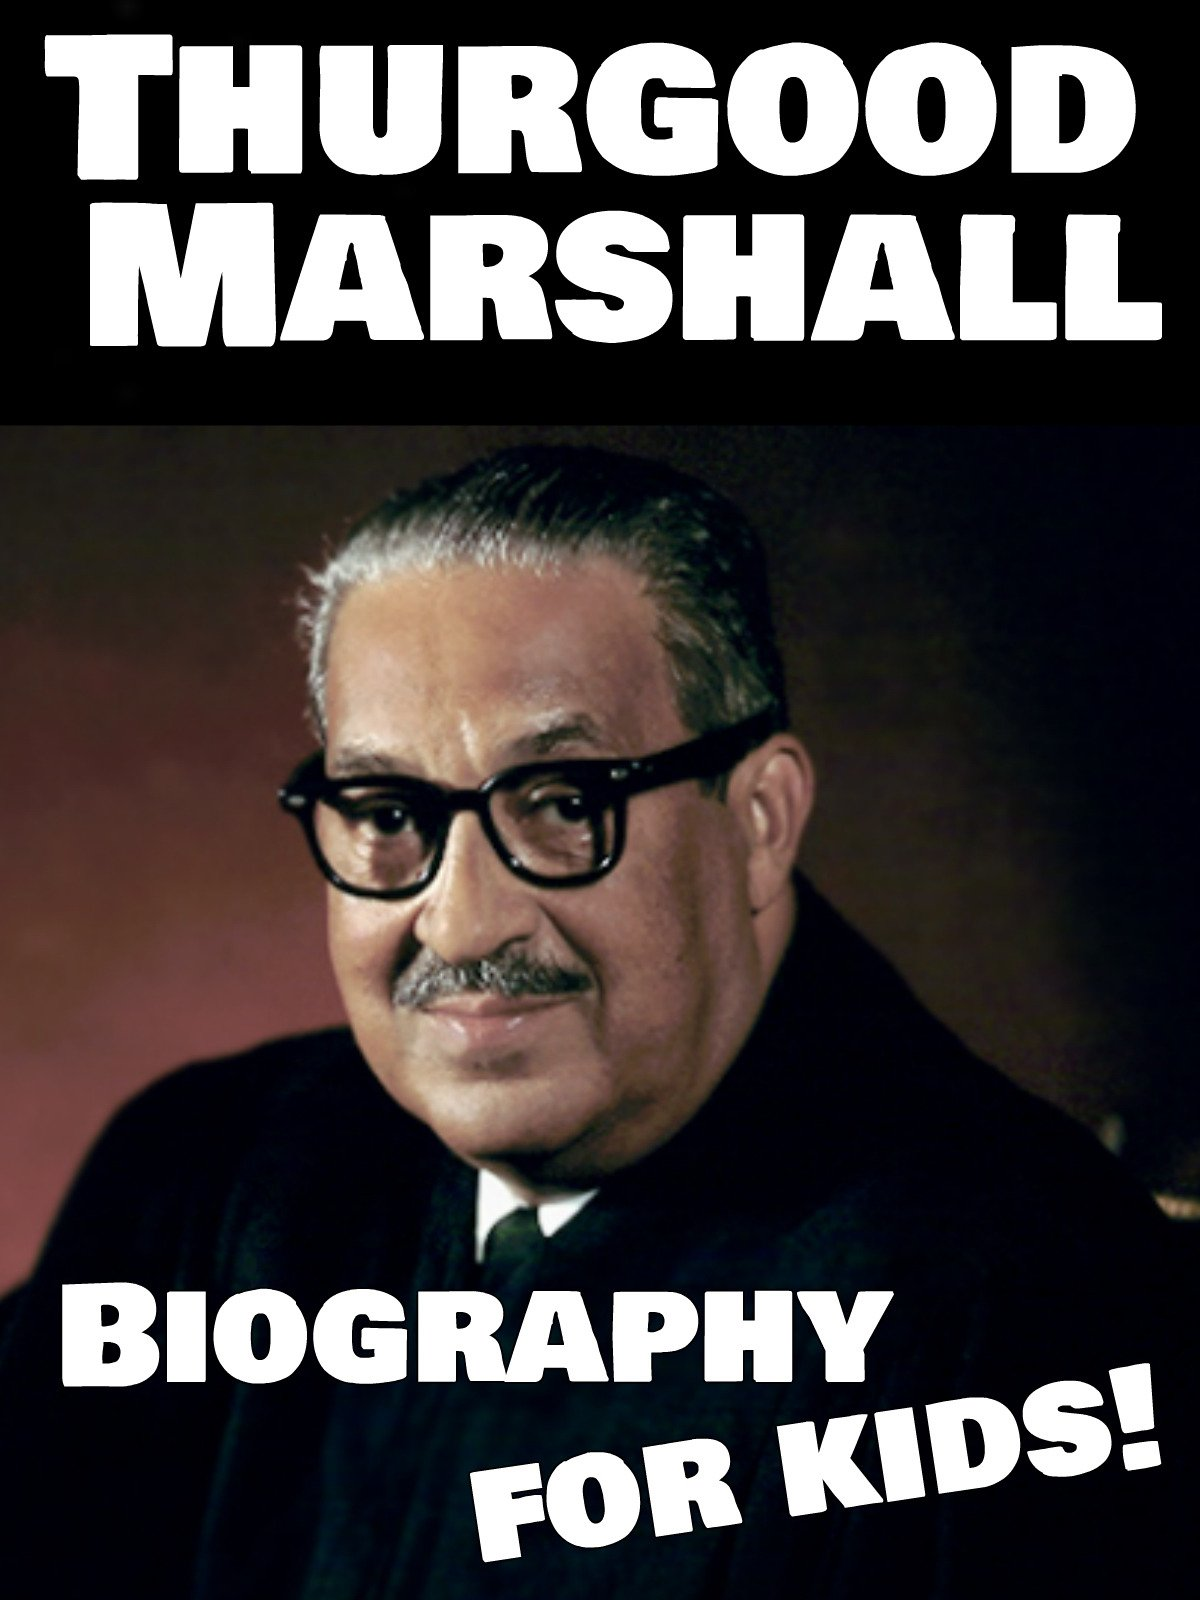 Thurgood Marshall Biography for Kids! on Amazon Prime Instant Video UK